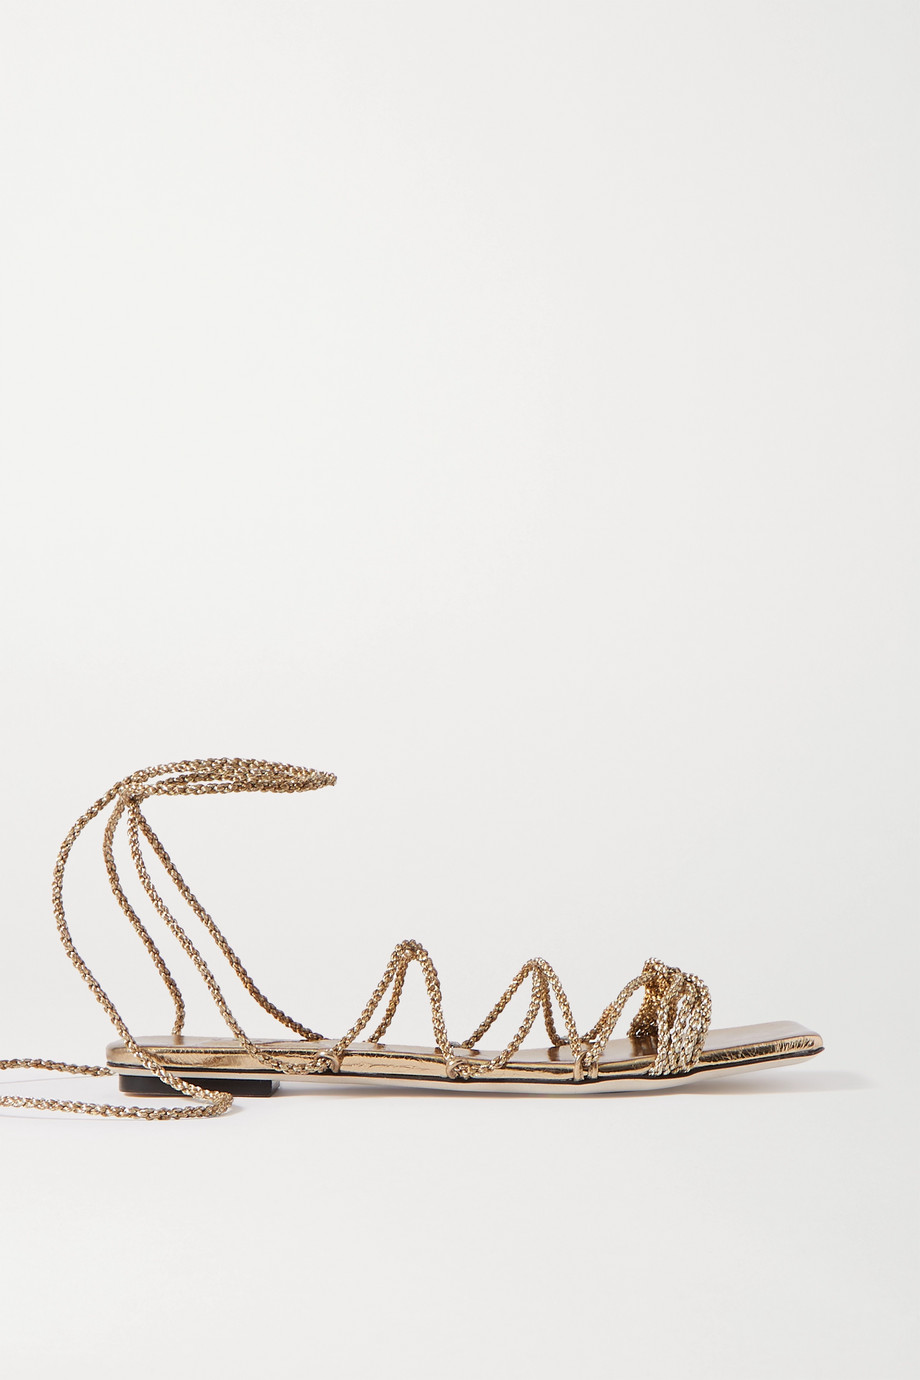 Serena Uziyel Ophilia metallic braided rope and leather sandals